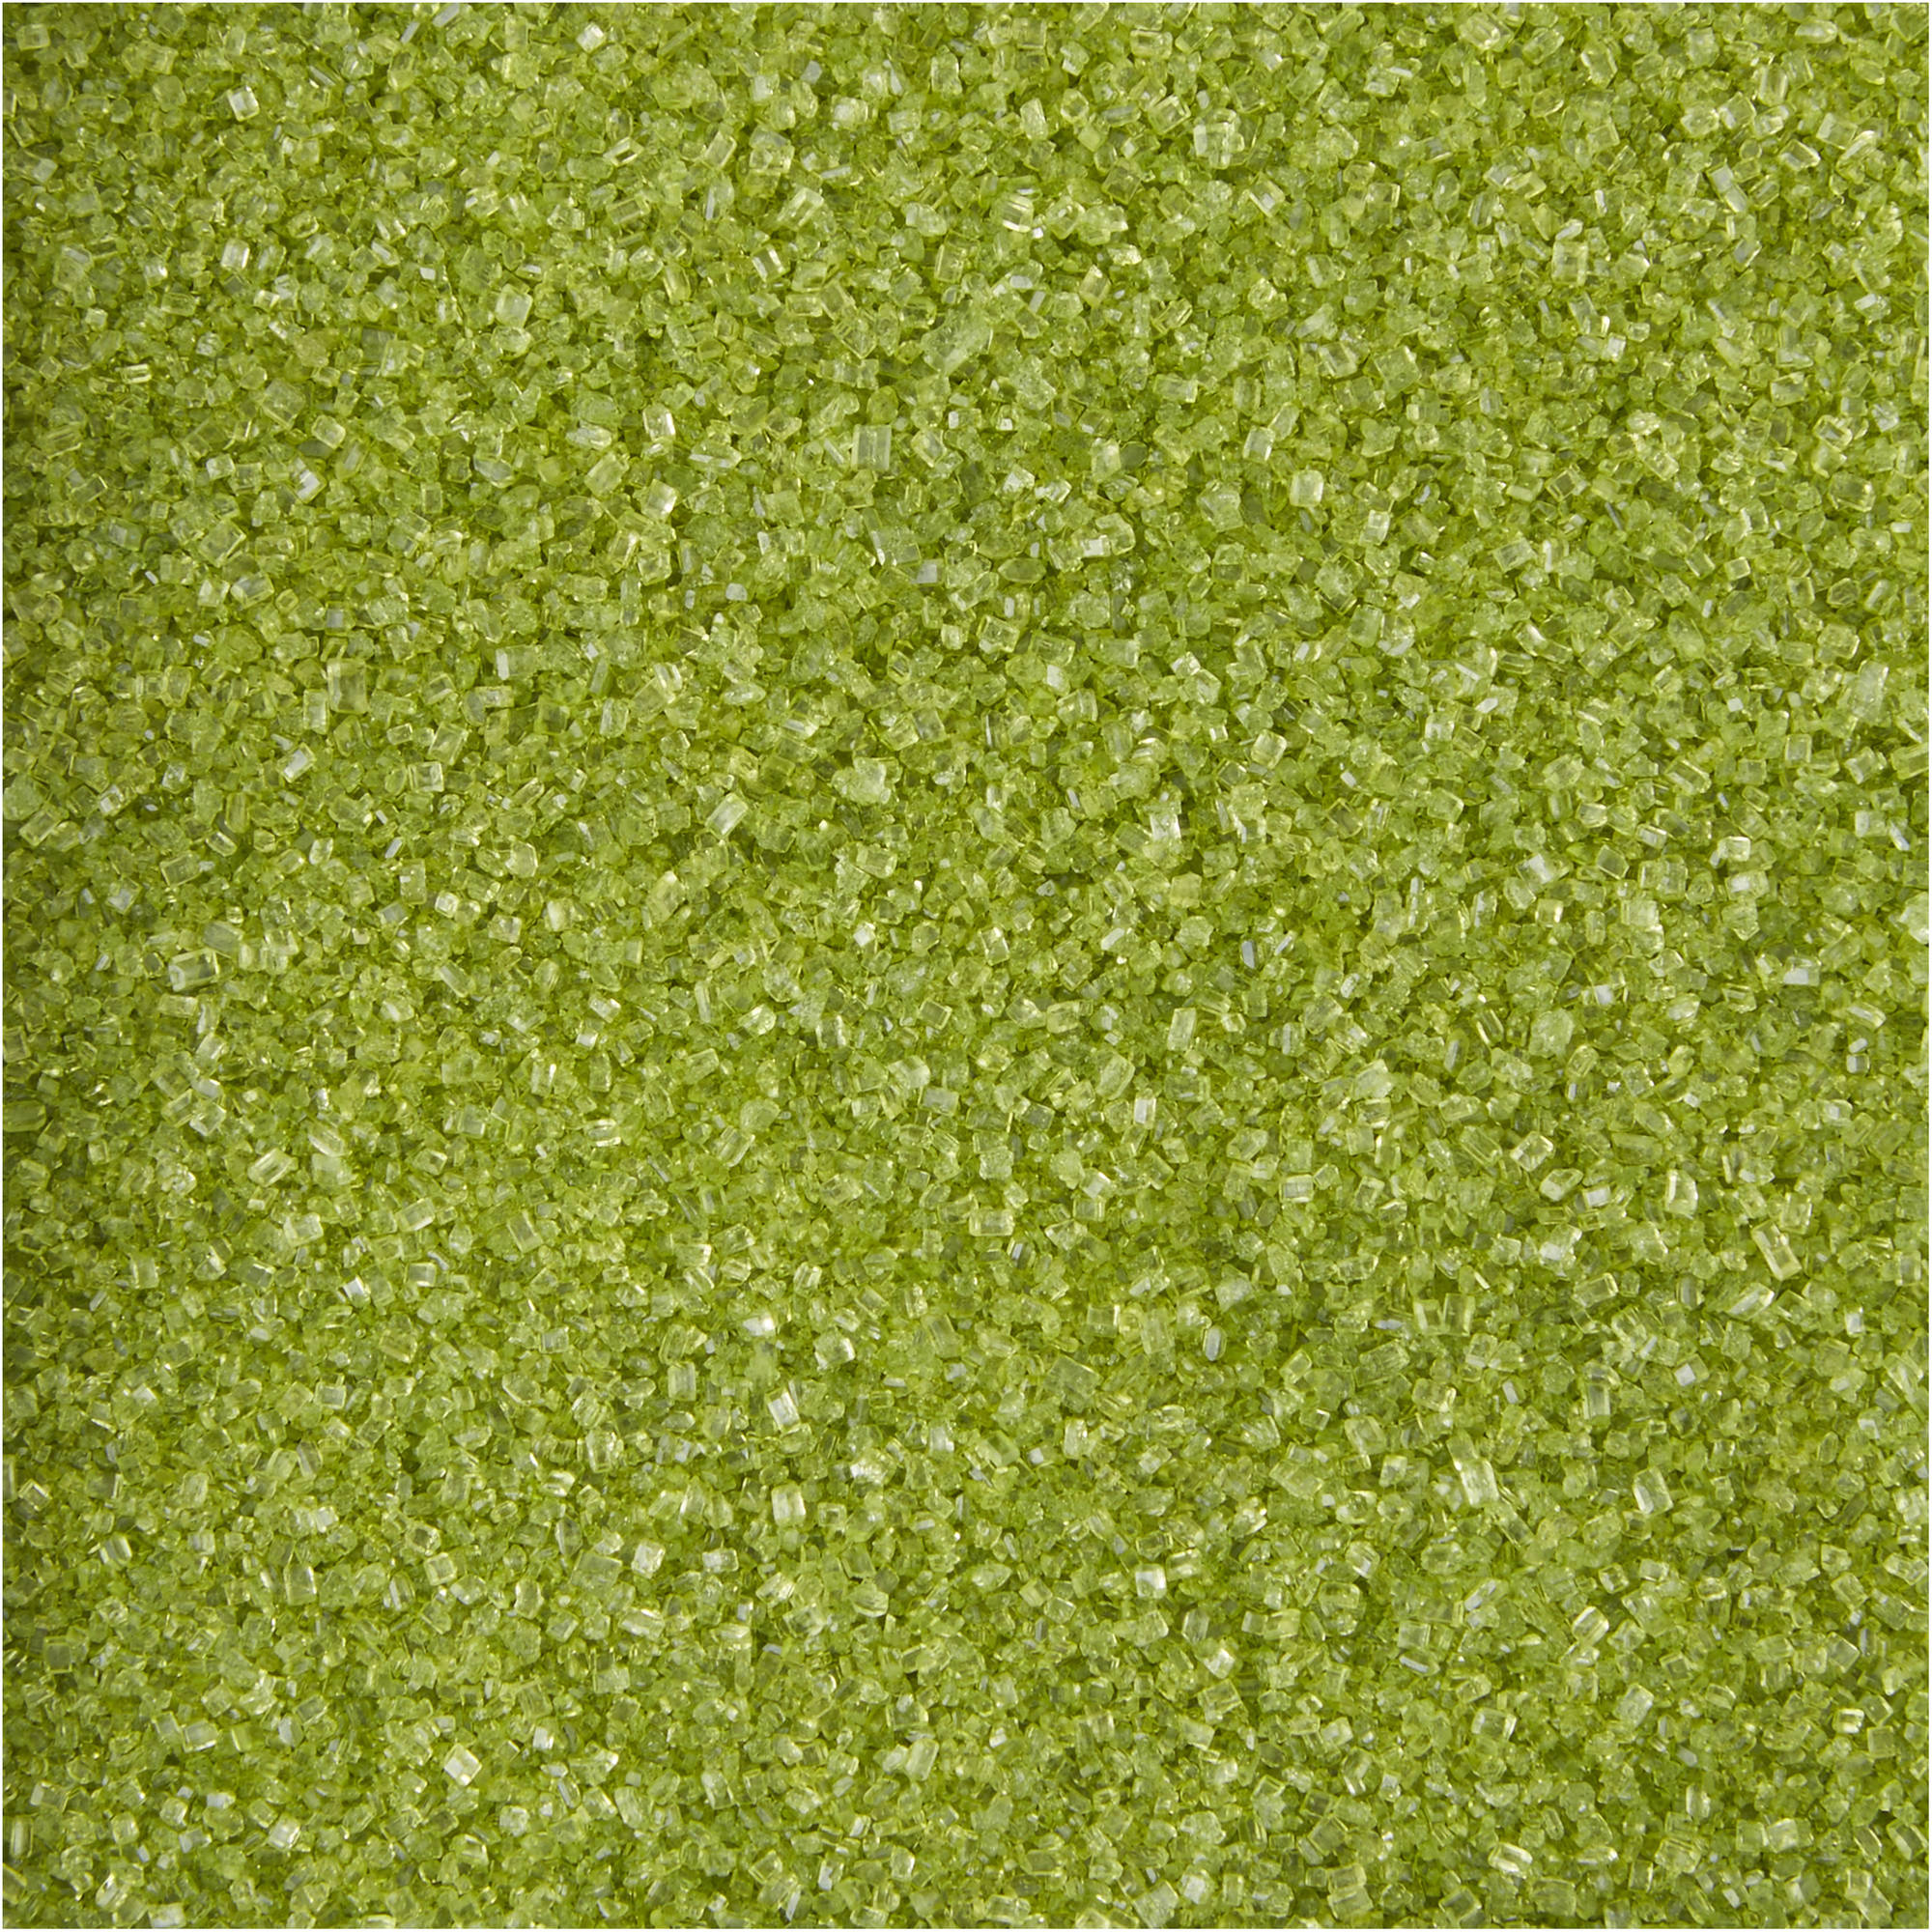 Wilton Short Stack Green Sanding Sugar Sprinkles, 710-9855